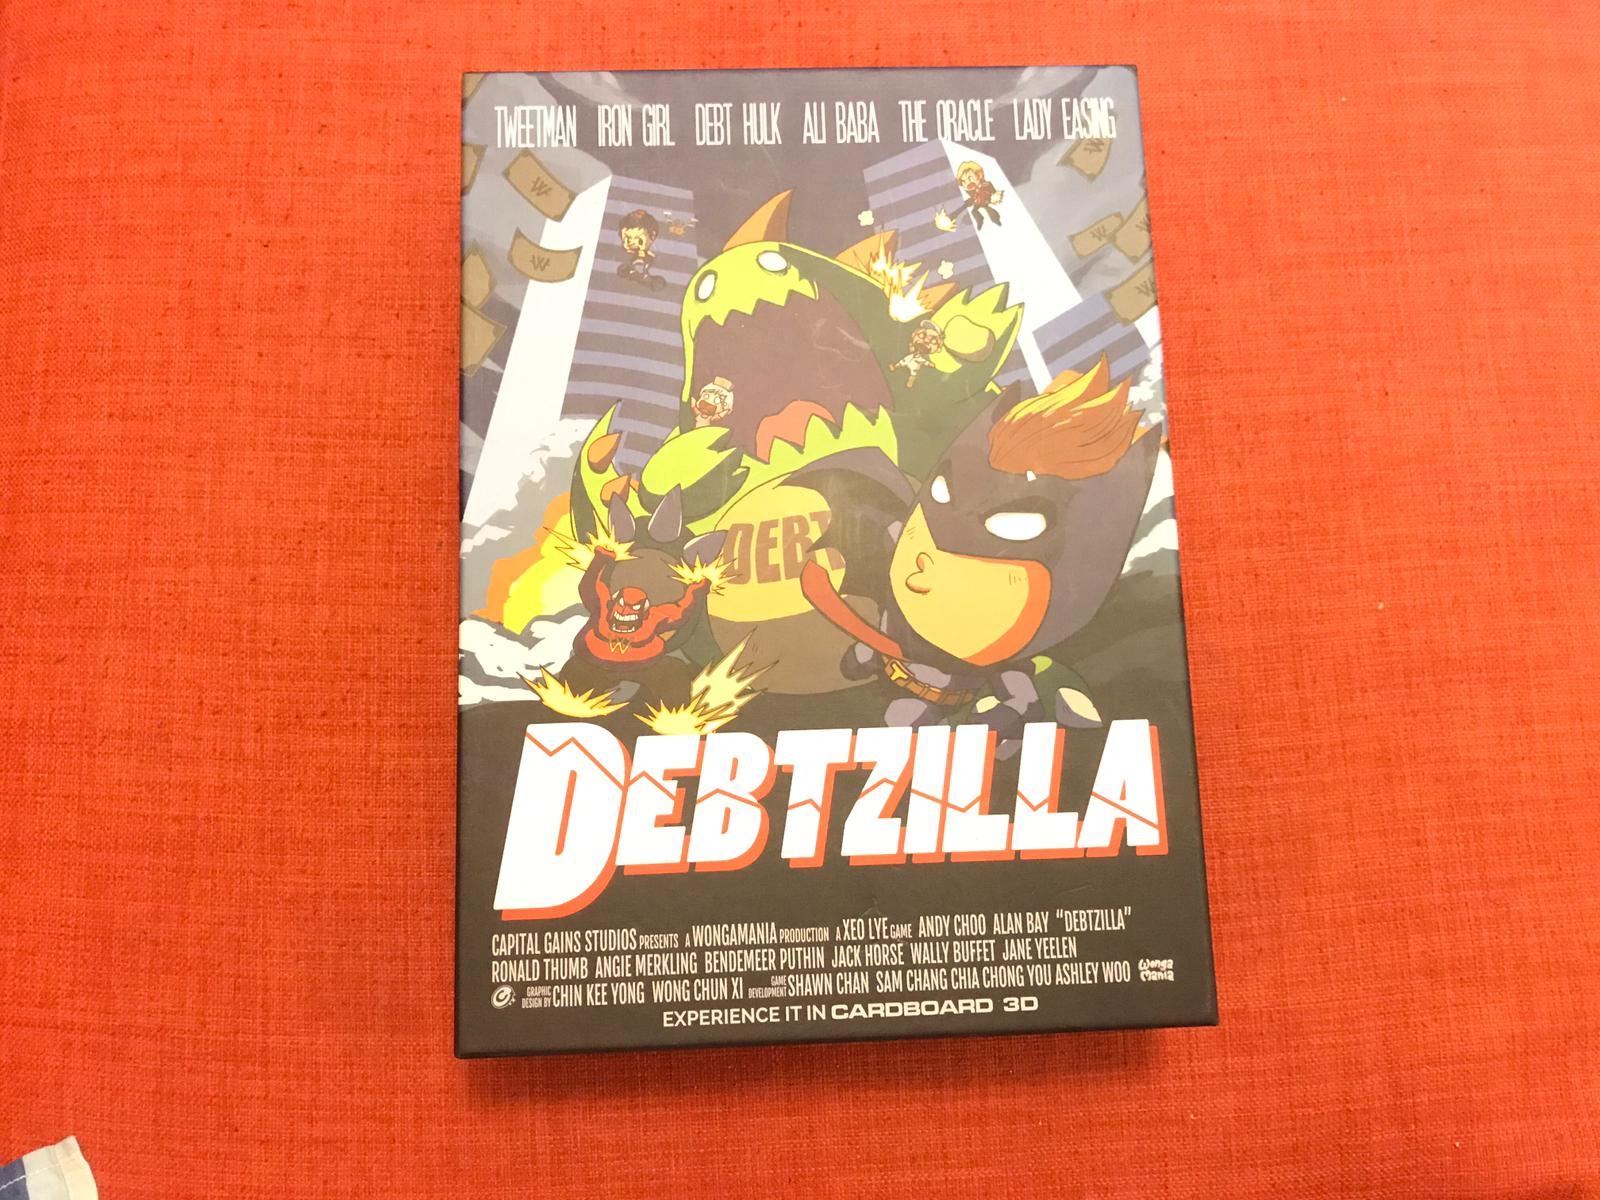 Debtzilla board game